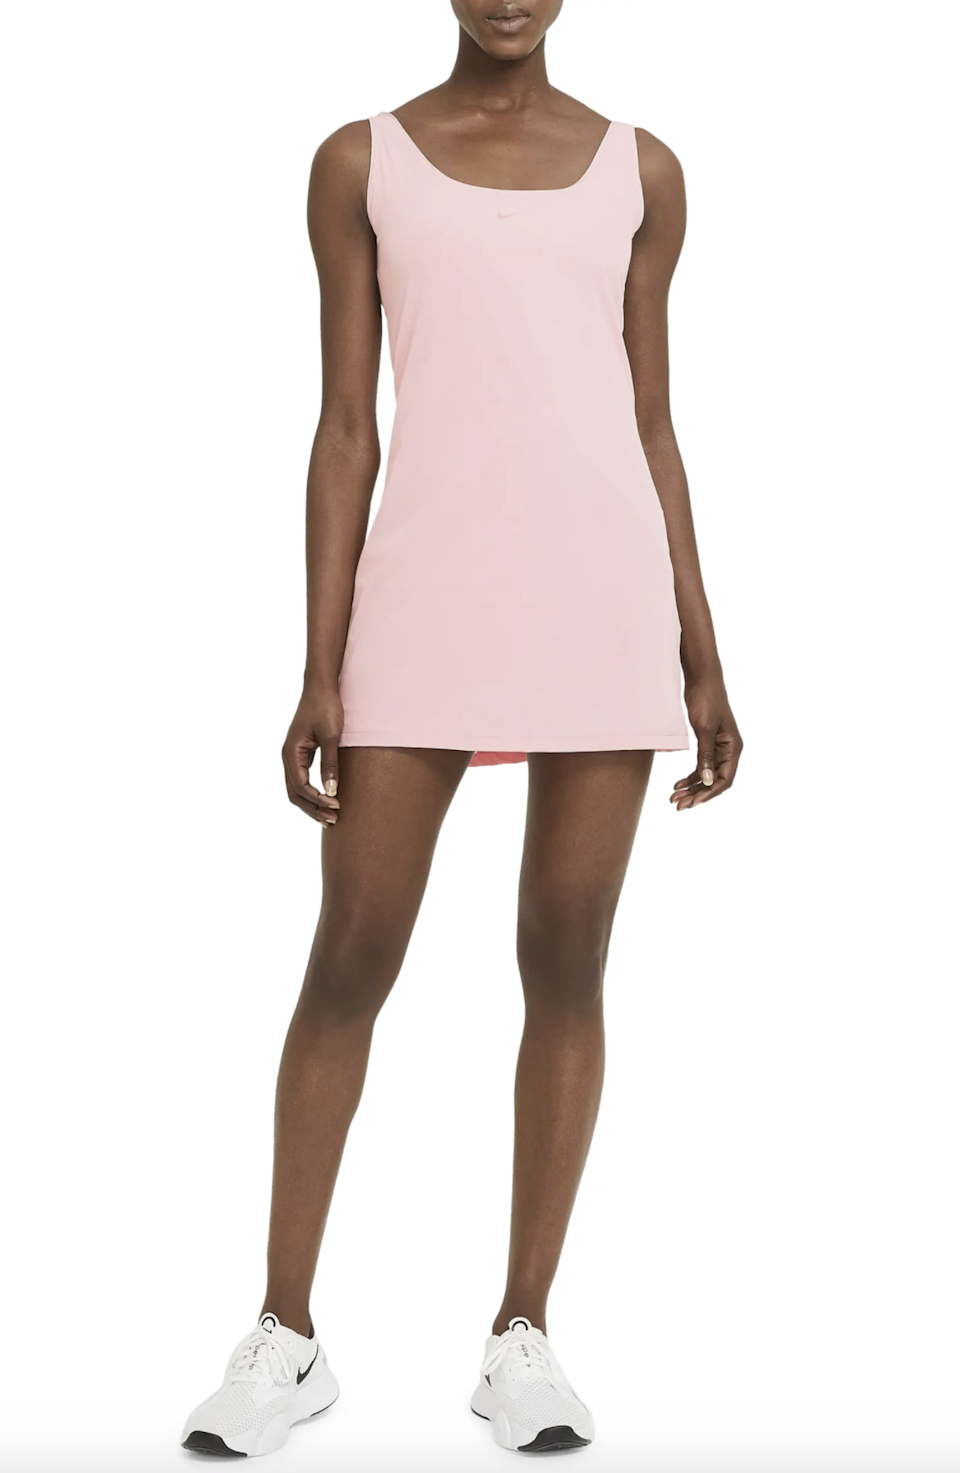 """<h2>Best For Errands<br></h2><br><h3>Nike Bliss Luxe Training Dress<br></h3><br>Featuring a wide scoop-neck and built-in bodysuit, this sweat-wicking dress is perfect for brunch, spin class, and your weekly Trader Joe's run.<br><br><strong>What They're Saying:</strong> """"This is the perfect all-around dress for leisure, hiking, tennis, and more! It's very comfy and light while being very flattering. I bought it in three colors, and even a couple of friends bought this dress after seeing mine!""""<br><br><strong>Nike</strong> Bliss Luxe Training Dress, $, available at <a href=""""https://go.skimresources.com/?id=30283X879131&url=https%3A%2F%2Fwww.nordstrom.com%2Fs%2Fnike-bliss-luxe-training-dress%2F5676530%3F"""" rel=""""nofollow noopener"""" target=""""_blank"""" data-ylk=""""slk:Nordstrom"""" class=""""link rapid-noclick-resp"""">Nordstrom</a>"""